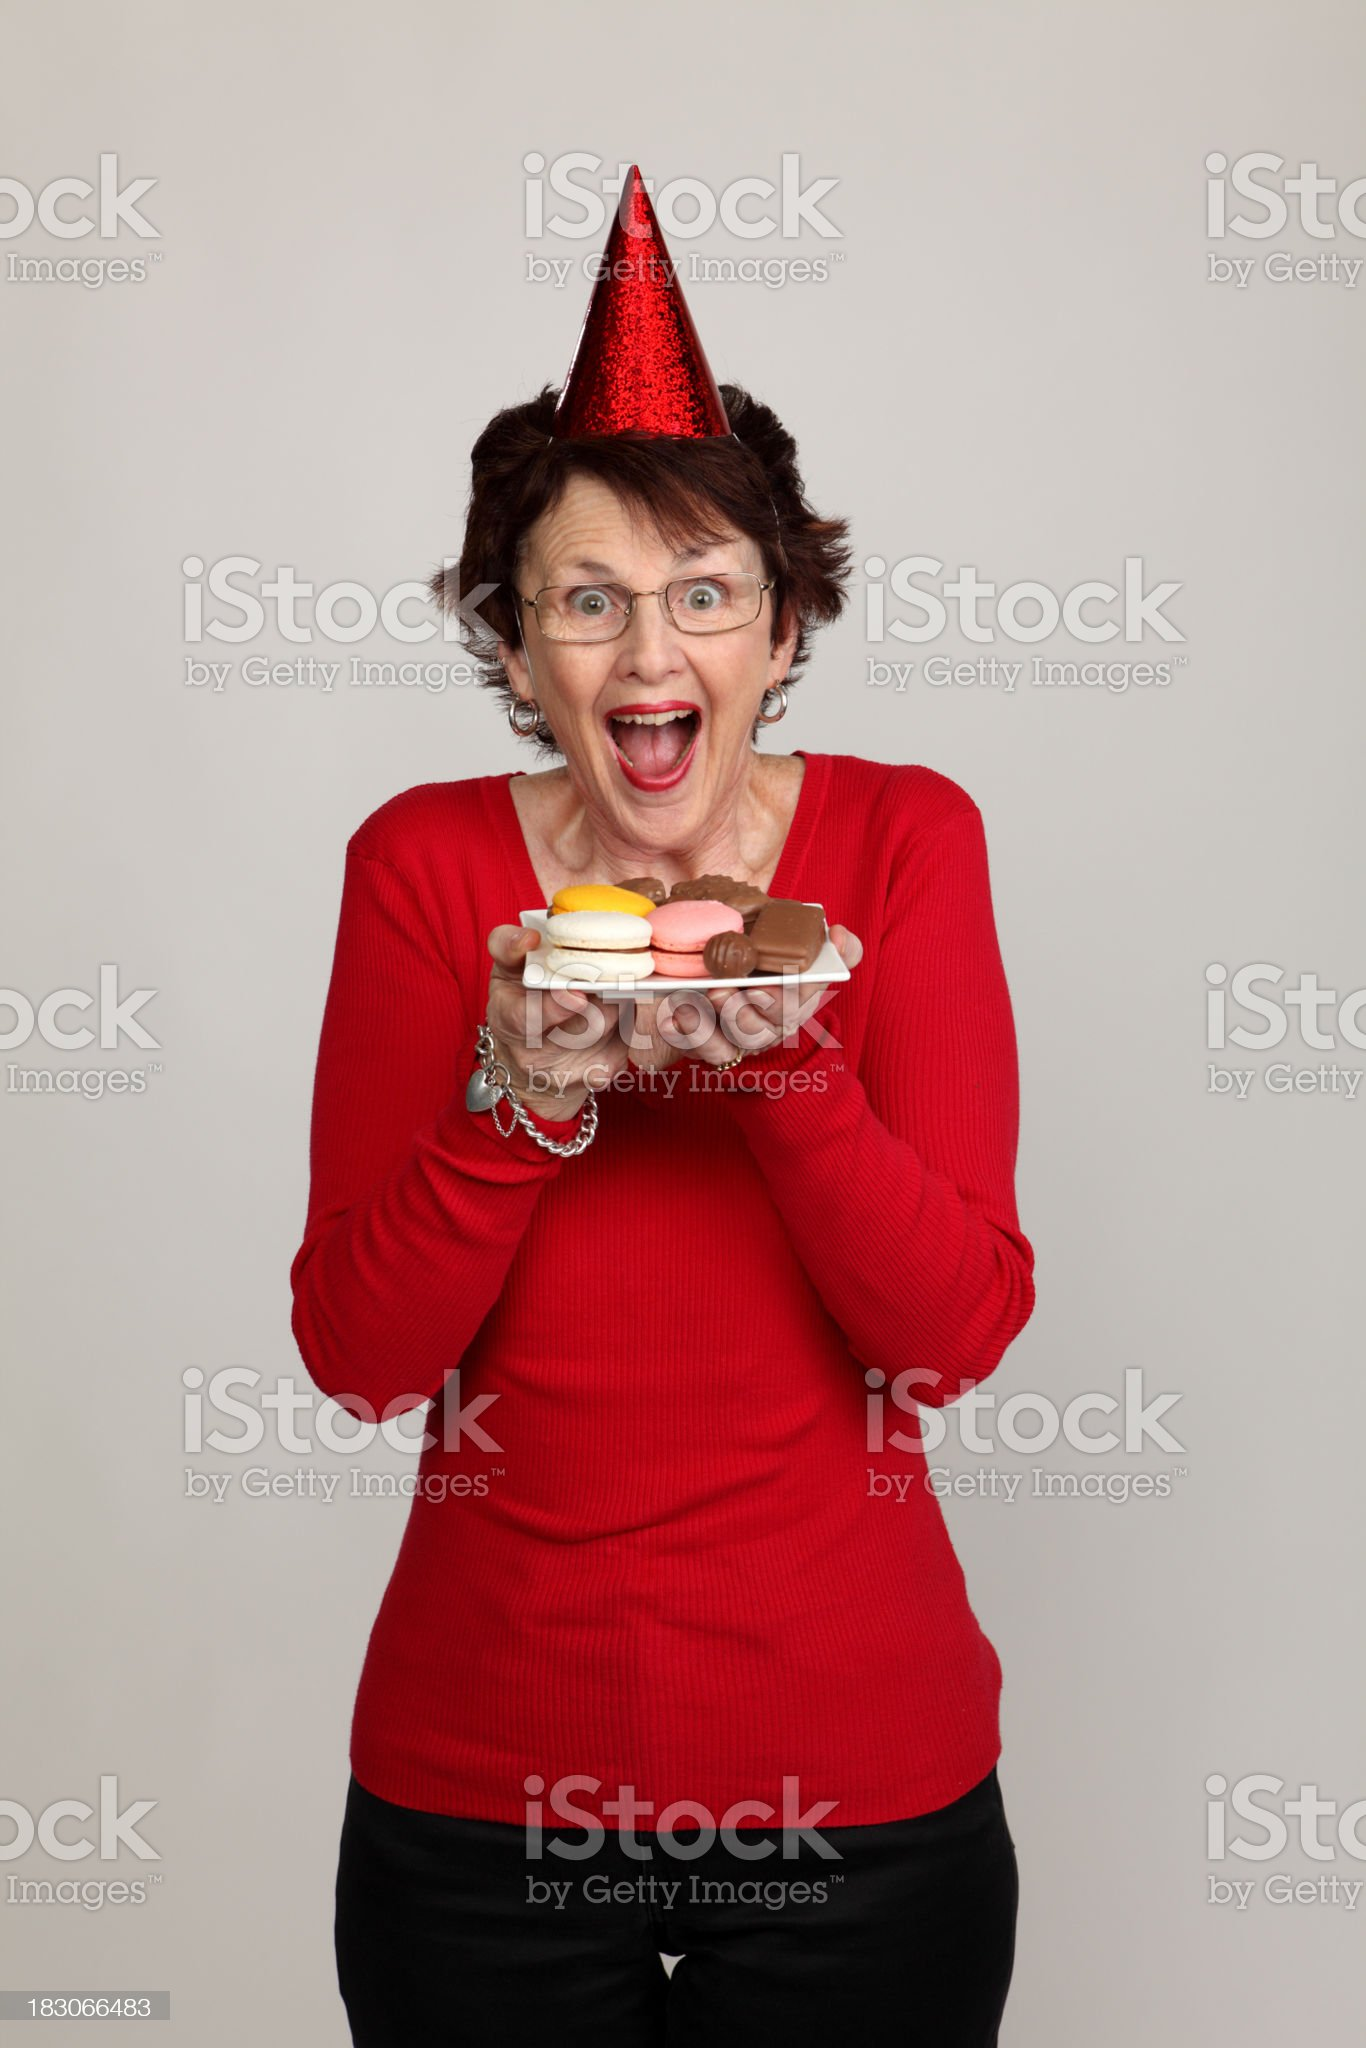 Happy at Party royalty-free stock photo